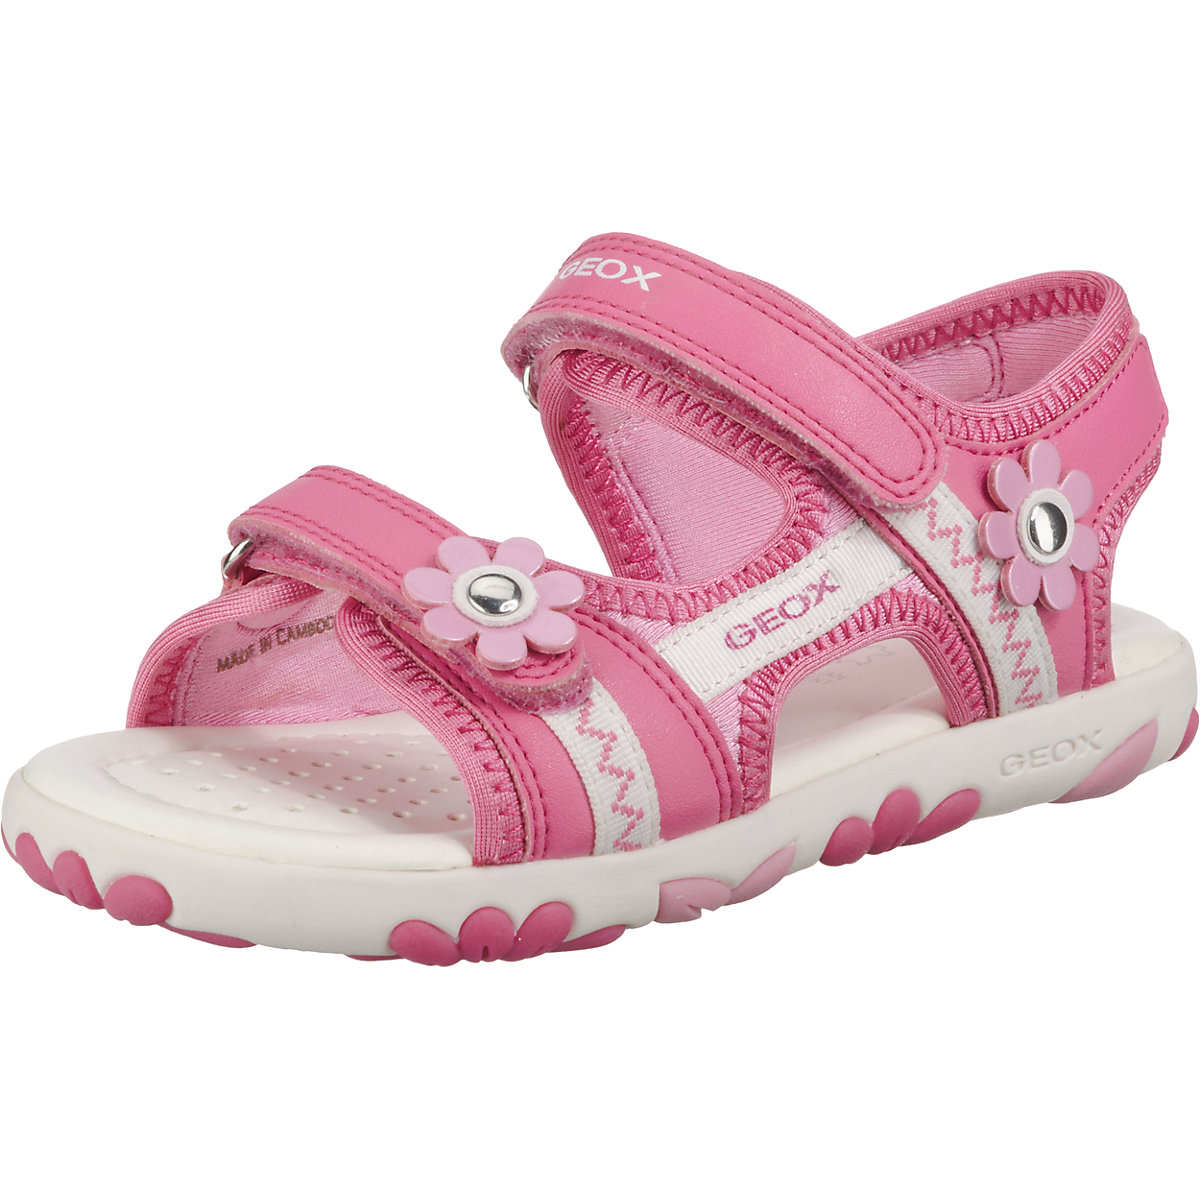 GEOX Sandals 10185292 children's shoes comfortable and light girls and boys sandals adidas s74649 sports and entertainment for boys